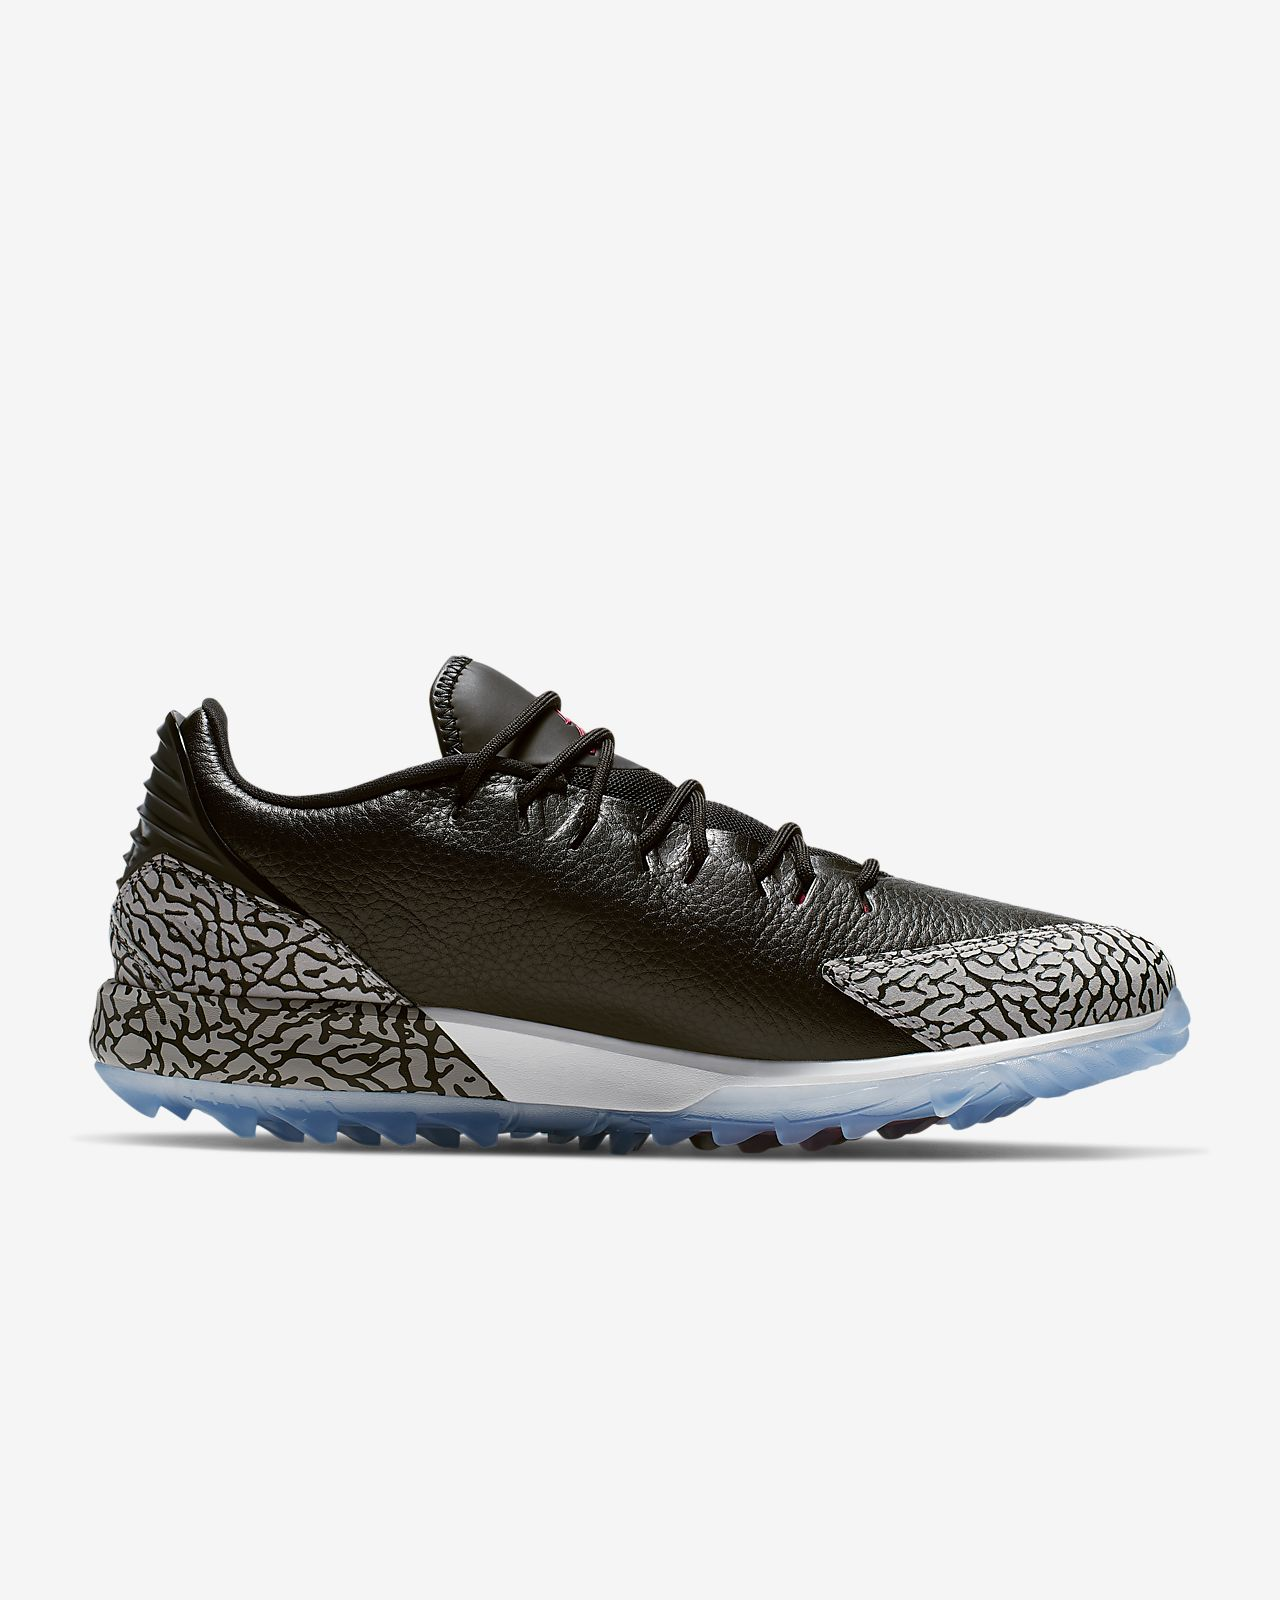 4e30147c09 Jordan ADG Men's Golf Shoe. Nike.com CA